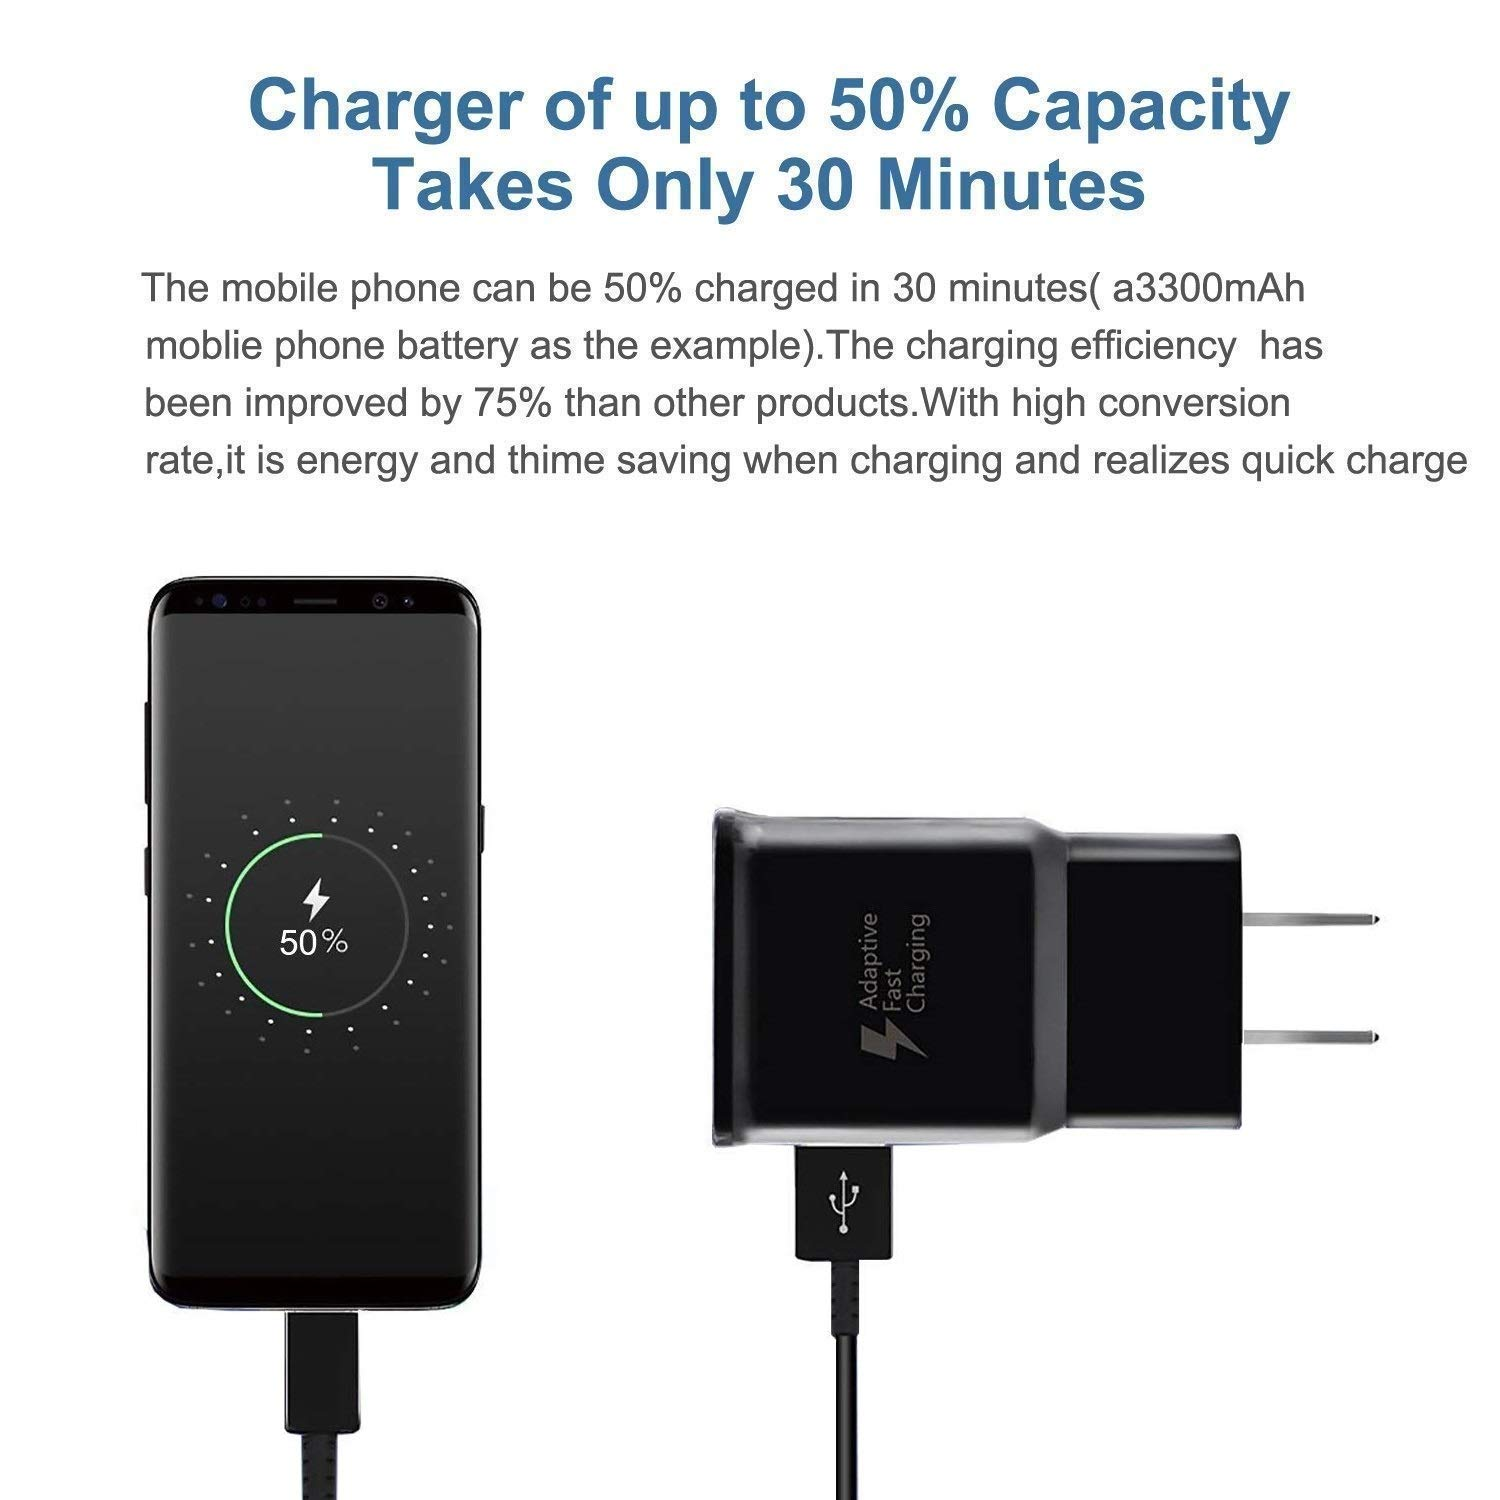 Fast Charger for Samsung Samsung Galaxy Fast Charger Adaptive Fast Charging Wall Charger Plug with USB Type C Cable Compatible Samsung Galaxy S9 S9 Plus S8 S8 Plus S10 S10 Plus Note 8 Note 9 Note 10